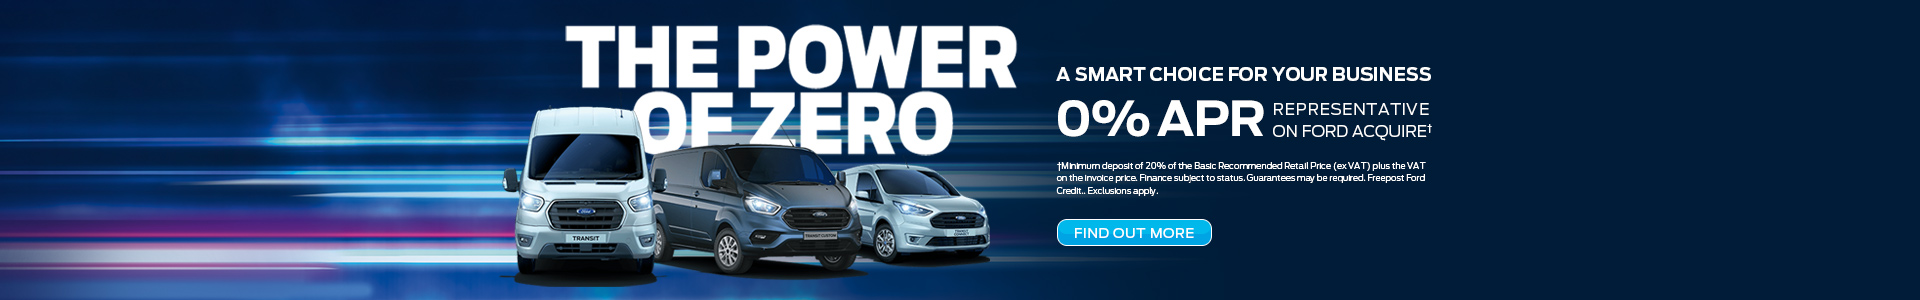 The Power of Zero on Ford Vans